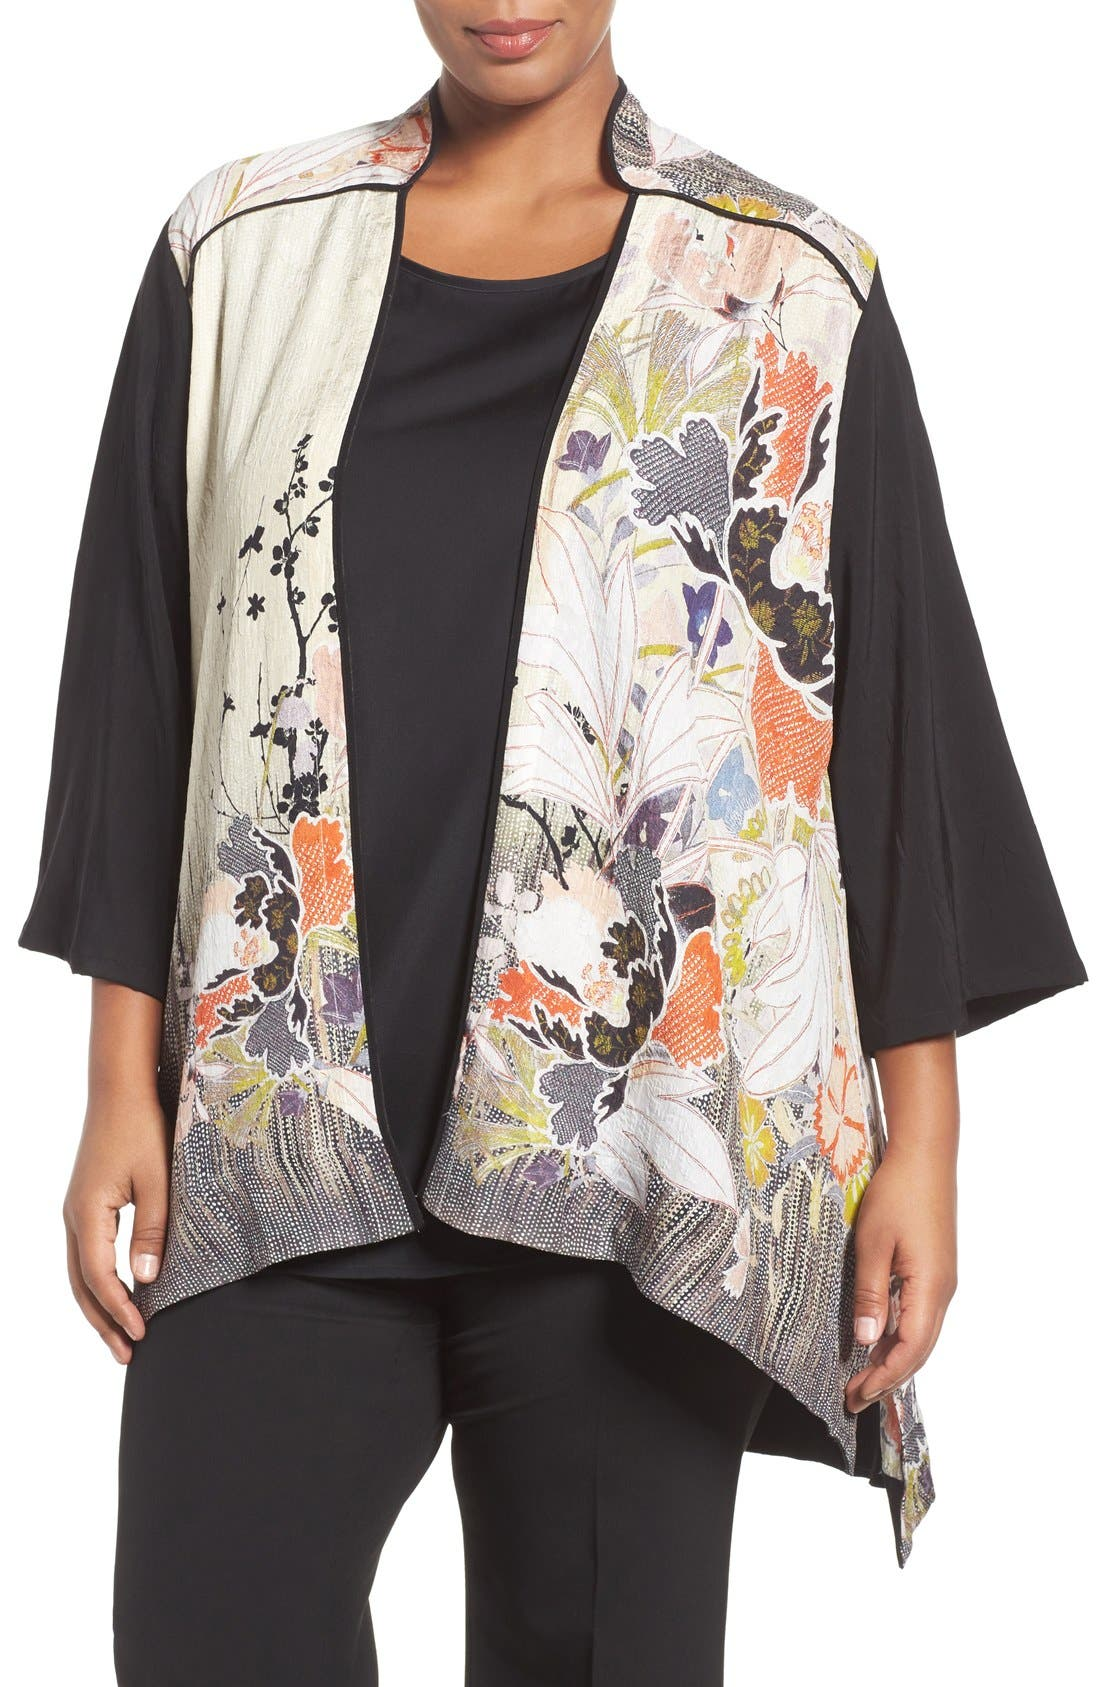 CITRON Print Block Silk Stand Collar Jacket